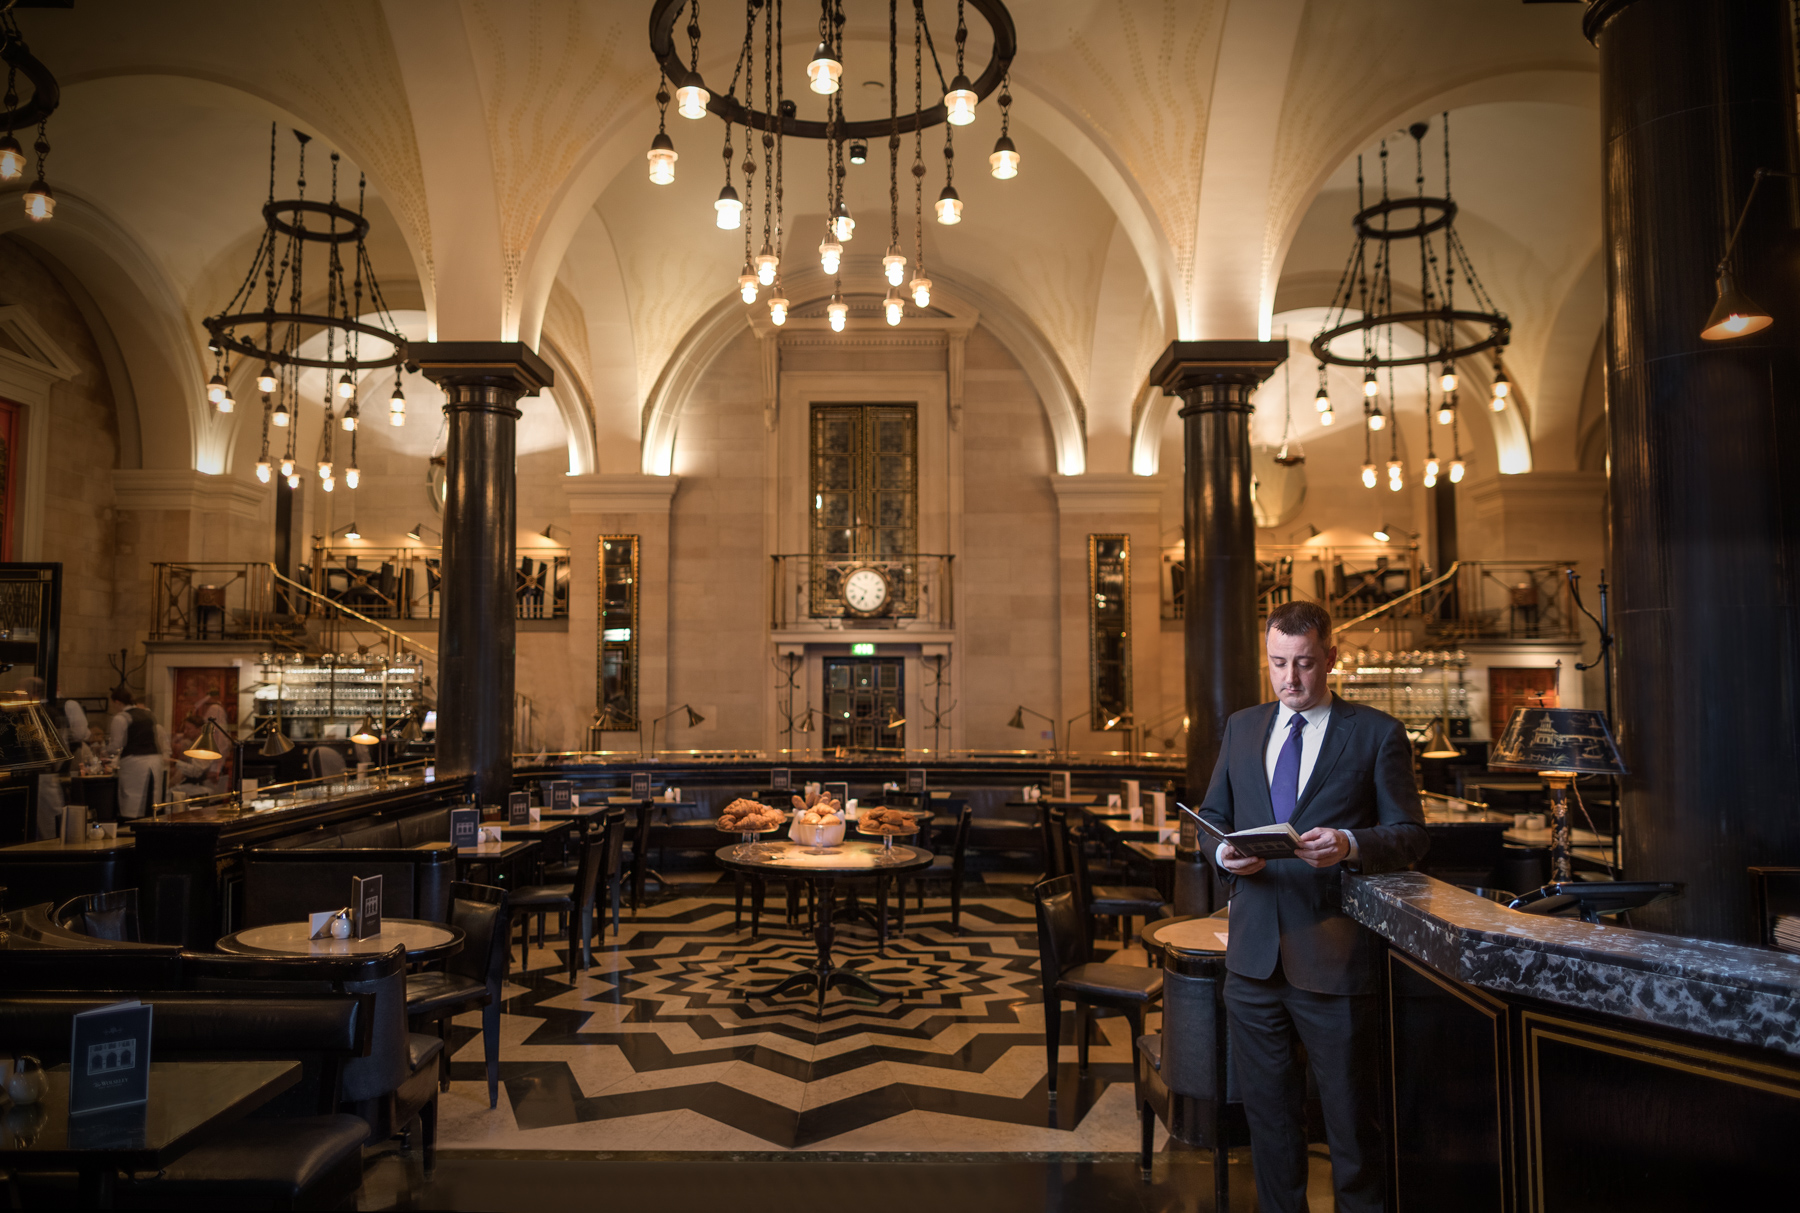 Matthew has been at The Wolseley on Piccadilly for 16 years now.